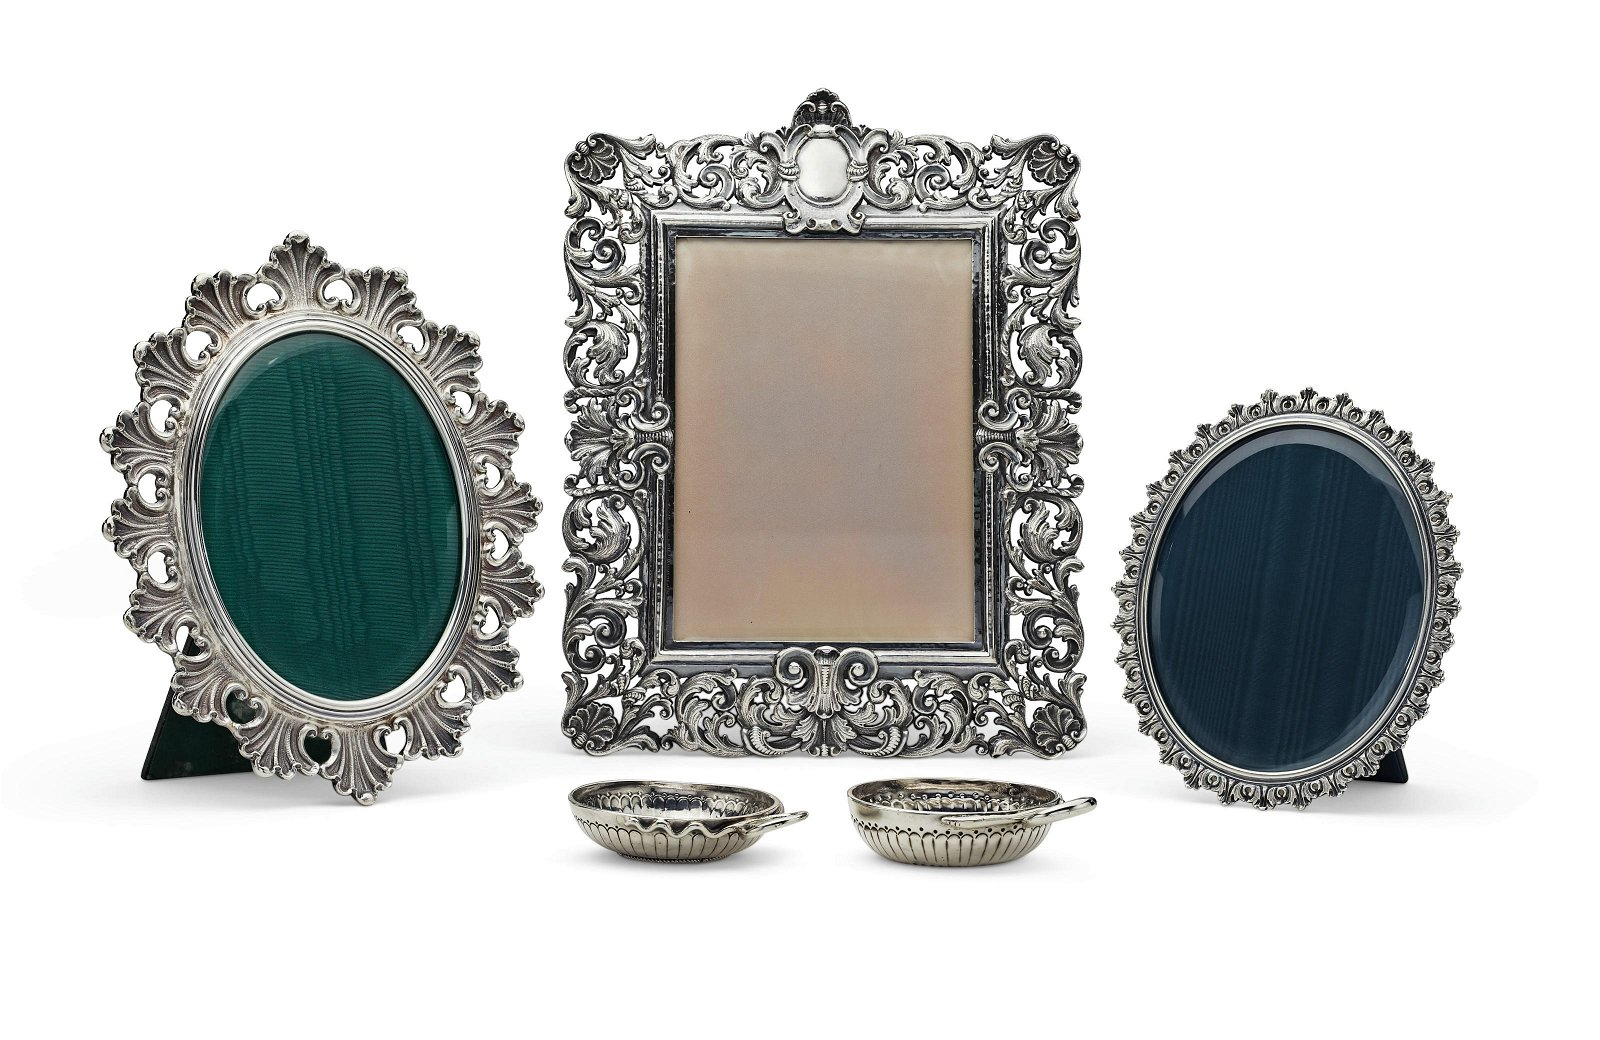 THREE ITALIAN SILVER PHOTO FRAMES AND TWO FRENCH SILVER